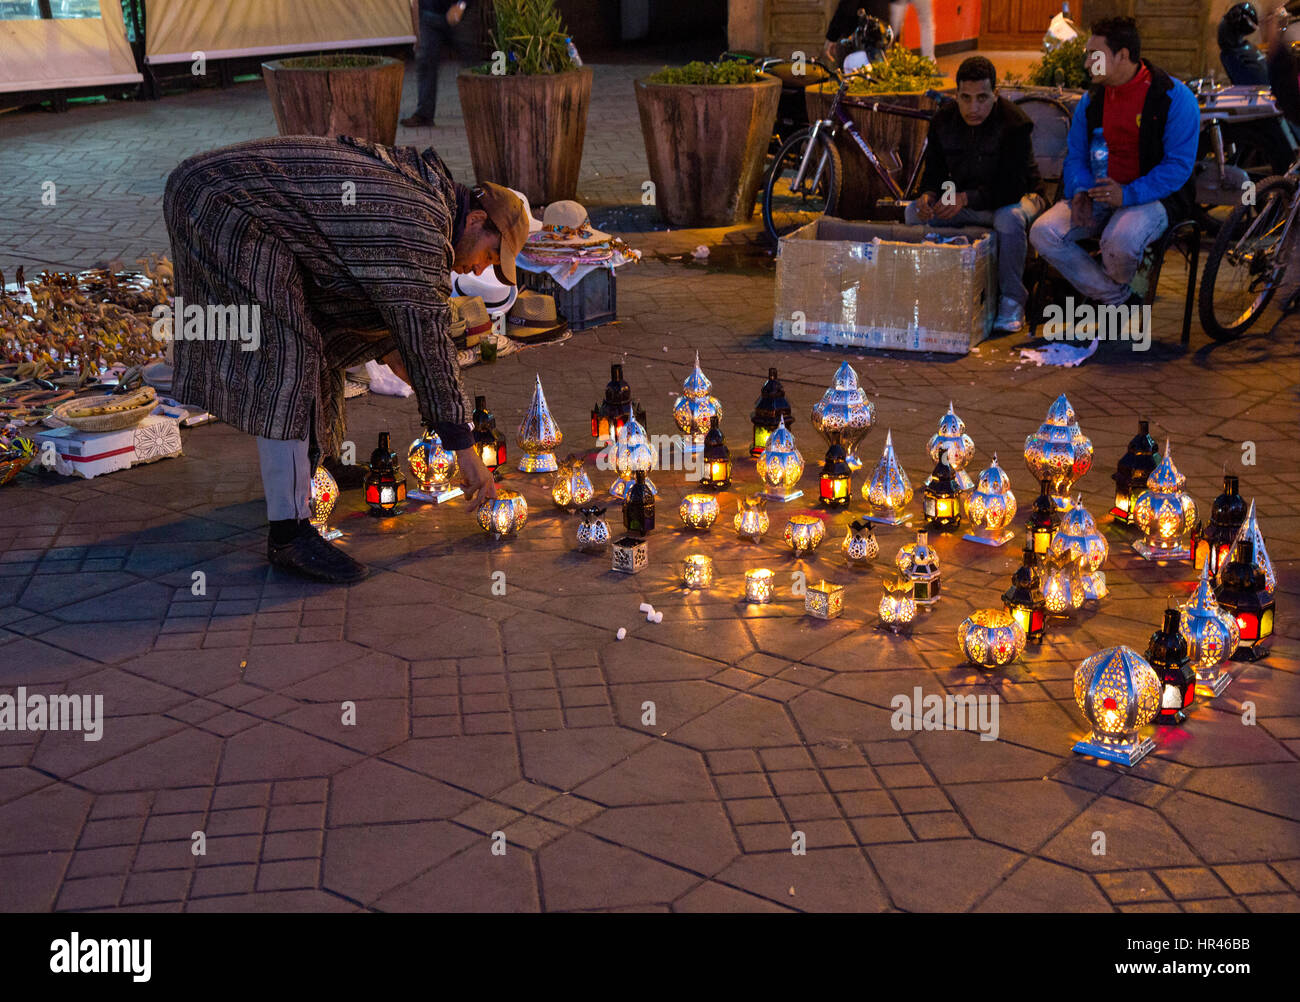 Marrakesh, Morocco.  Vendor Setting out Lamps for Sale in the Place Jemaa El-Fna. Stock Photo